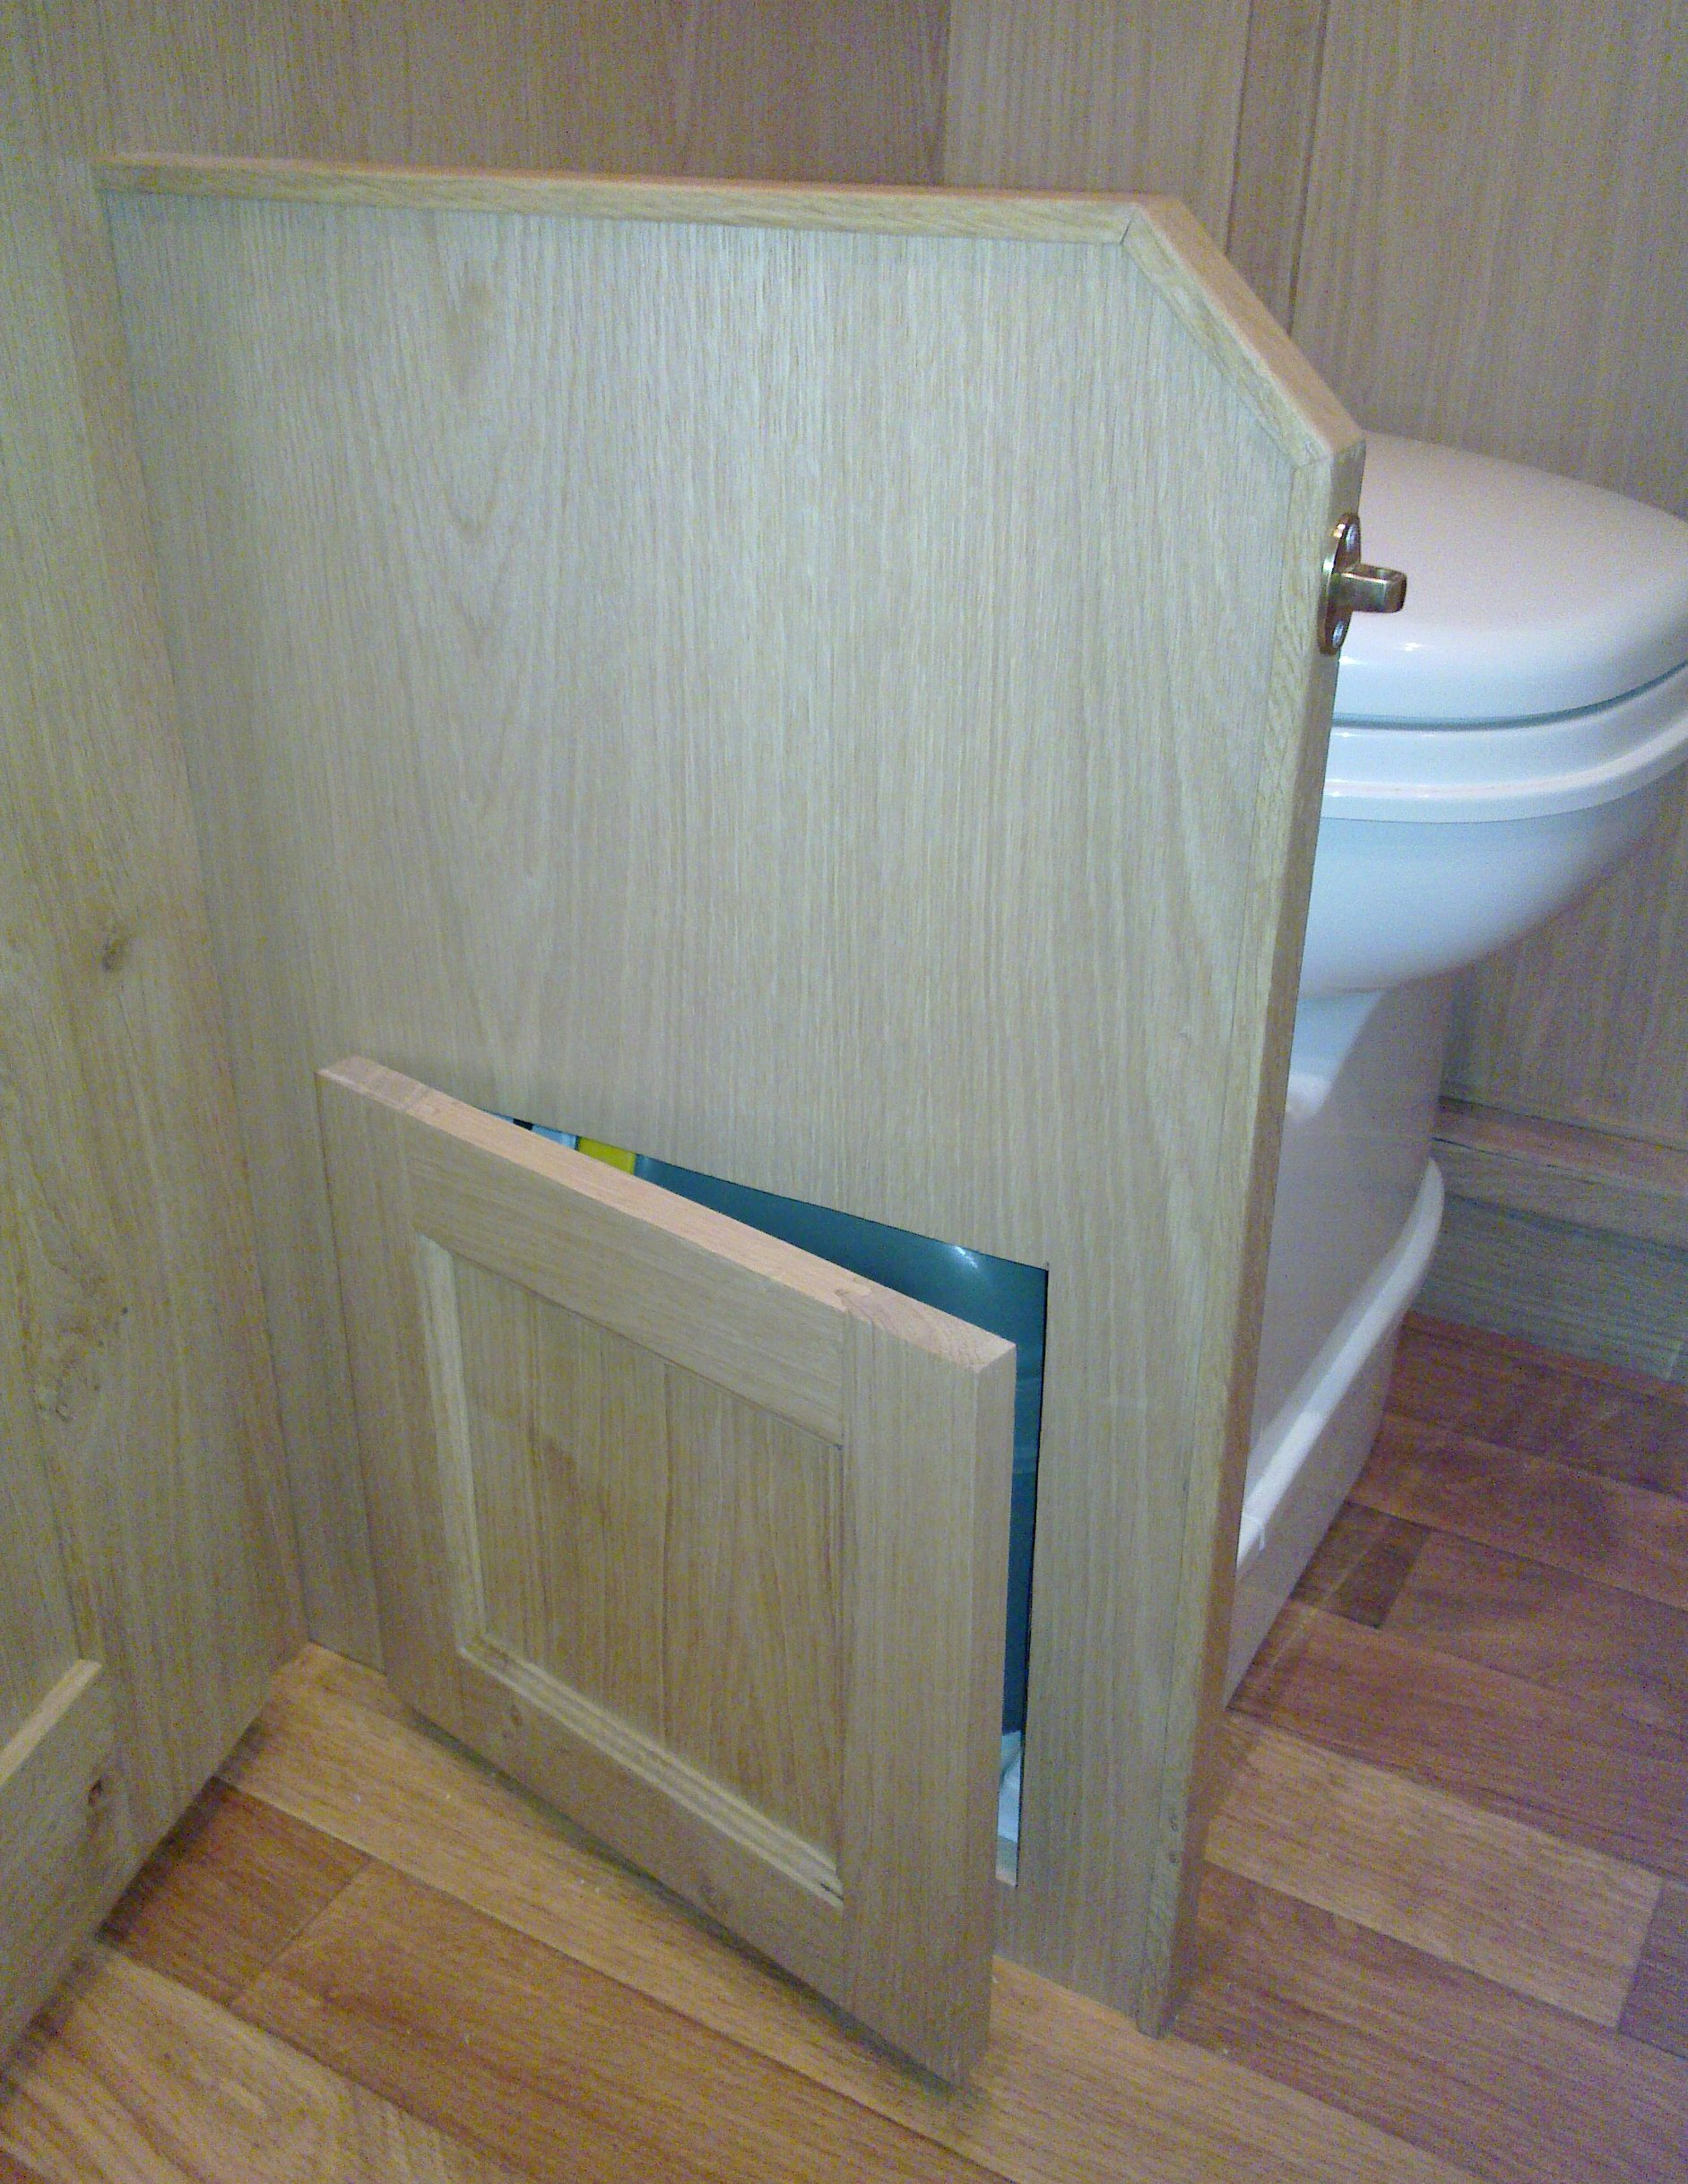 TOILET INSPECTION DOOR - OAK.jpg